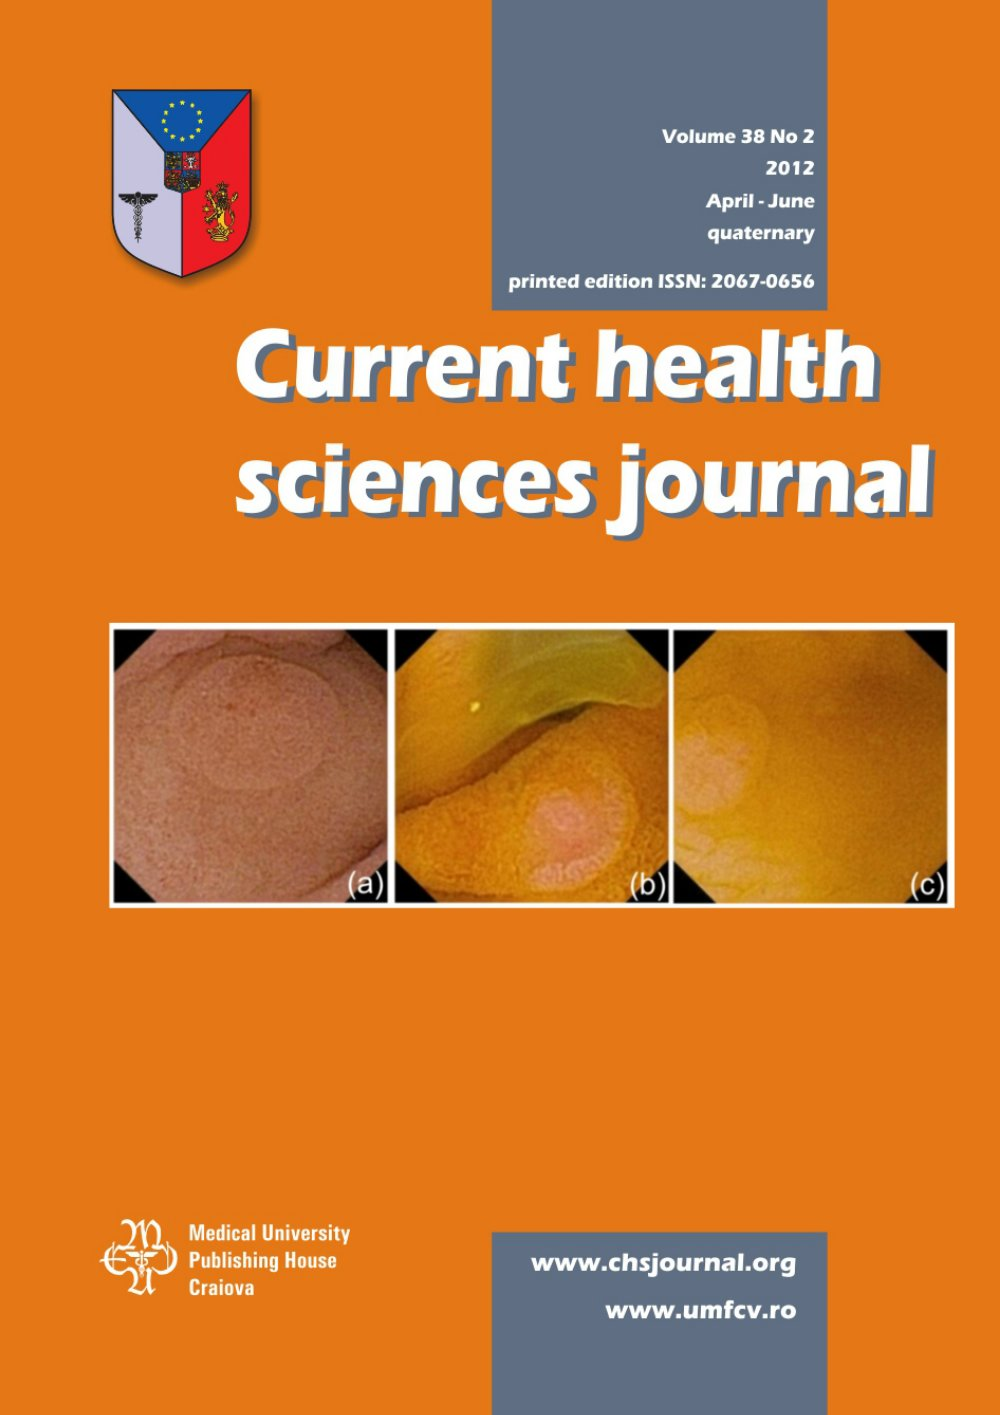 Current Health Sciences Journal, vol. 38 no. 2, 2012